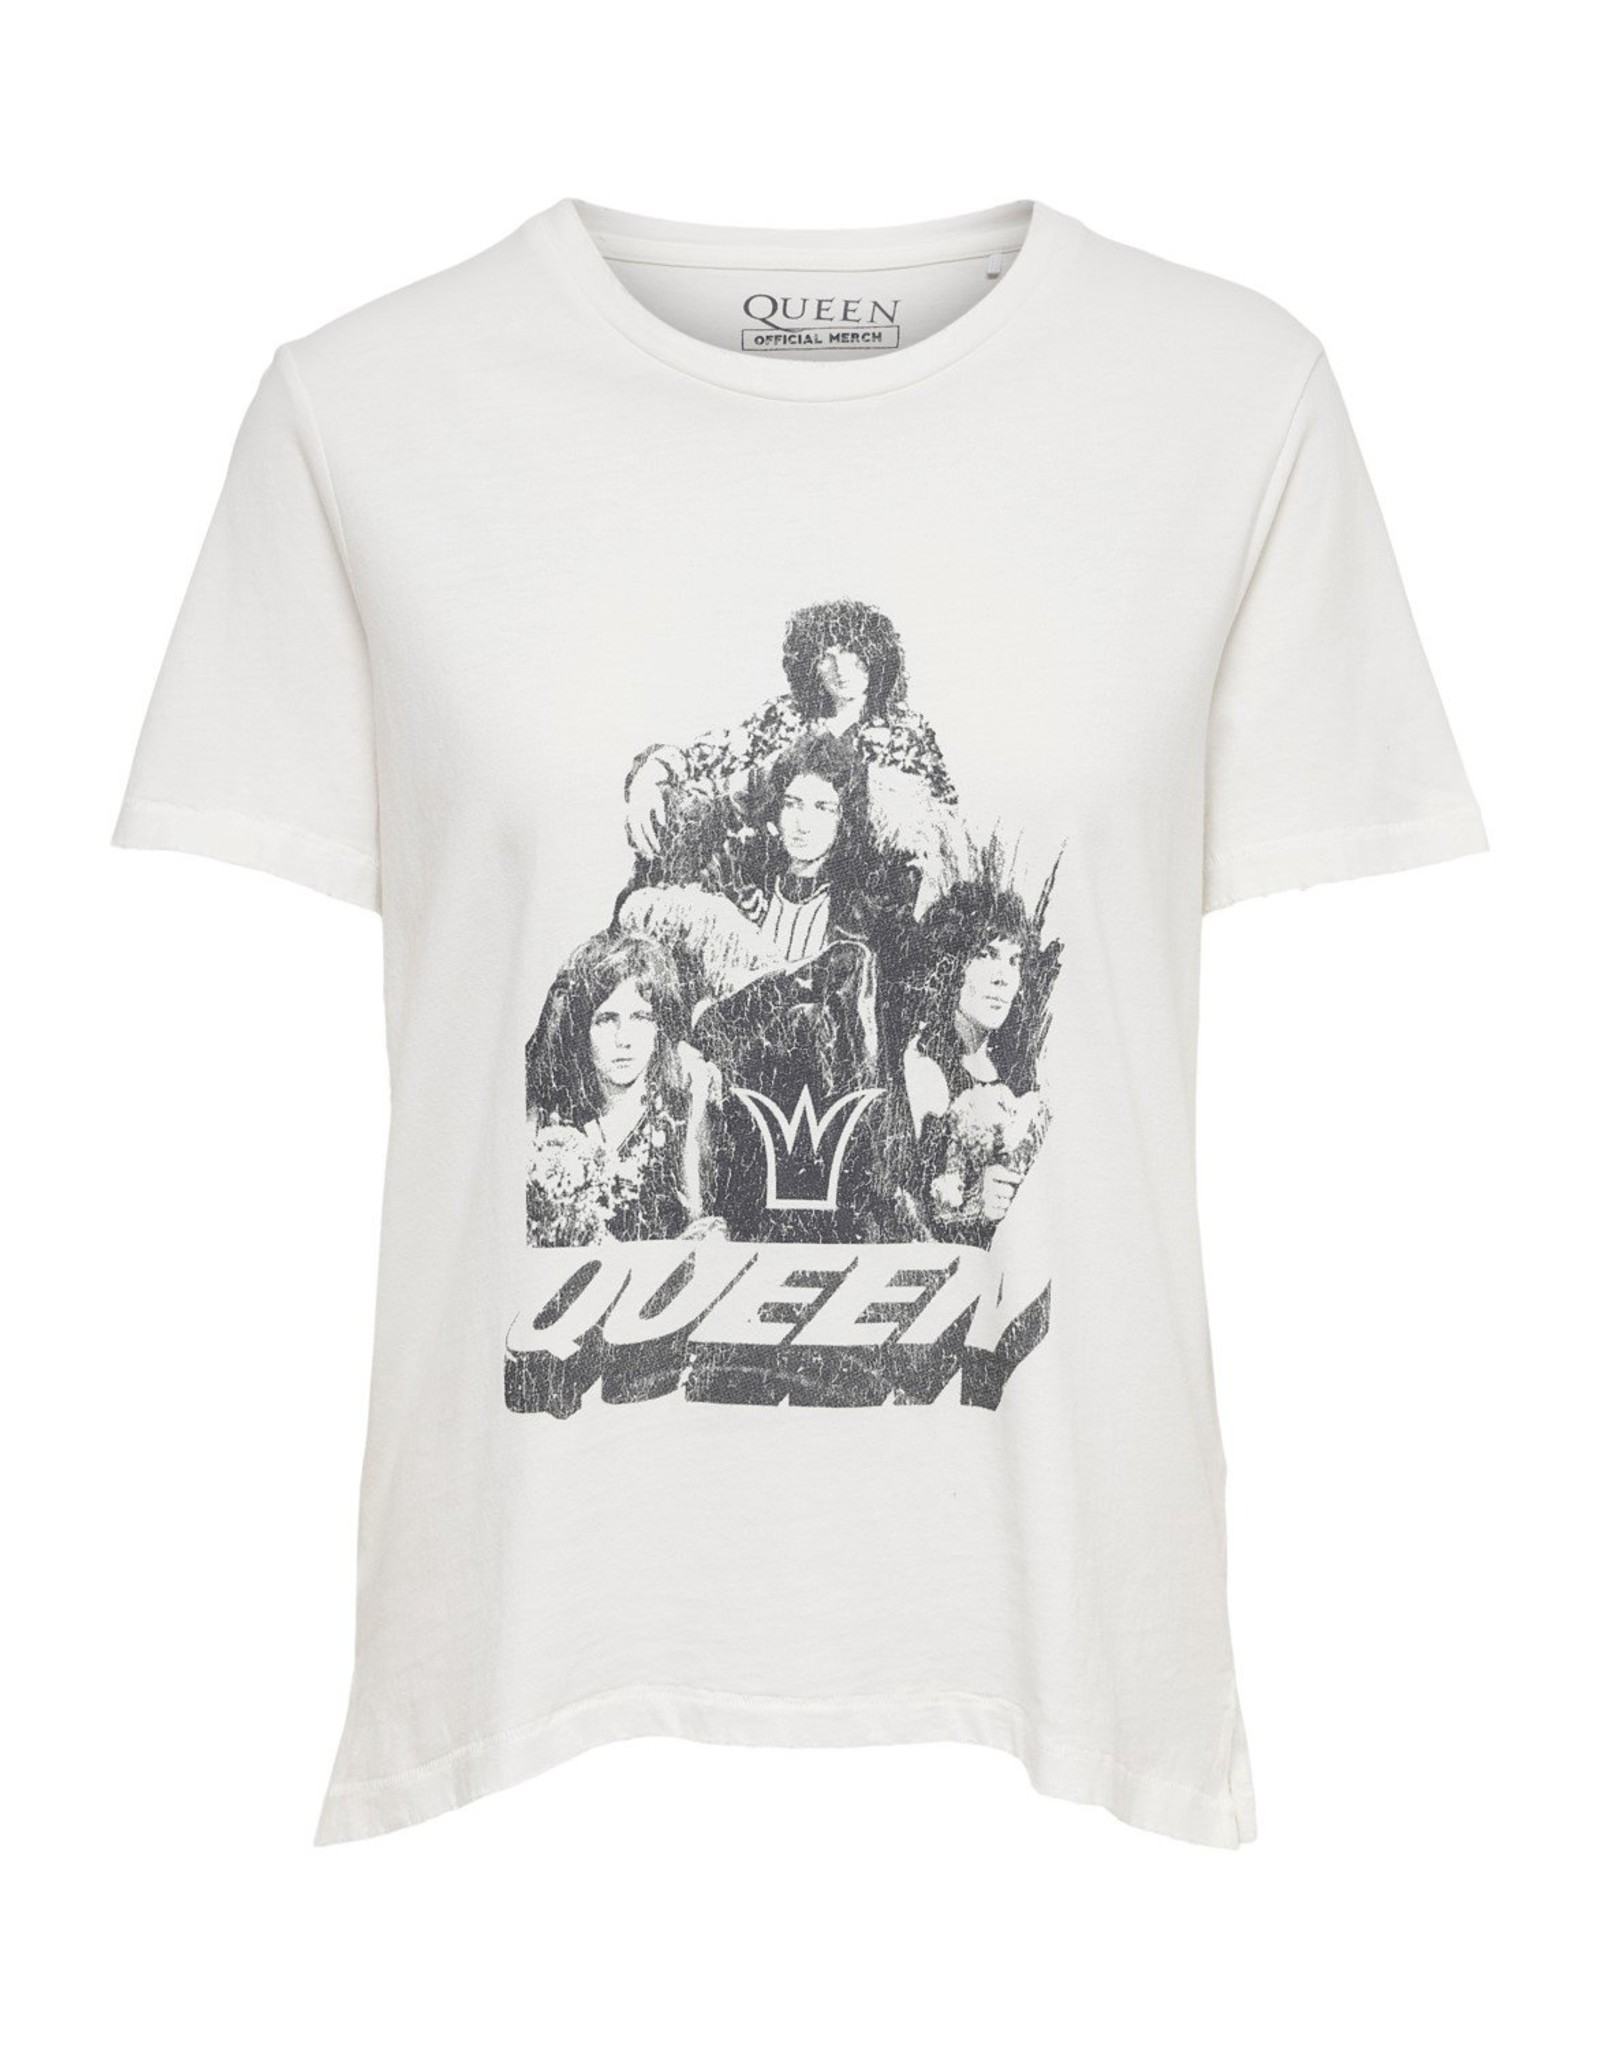 ONLY - Queen Band Tee